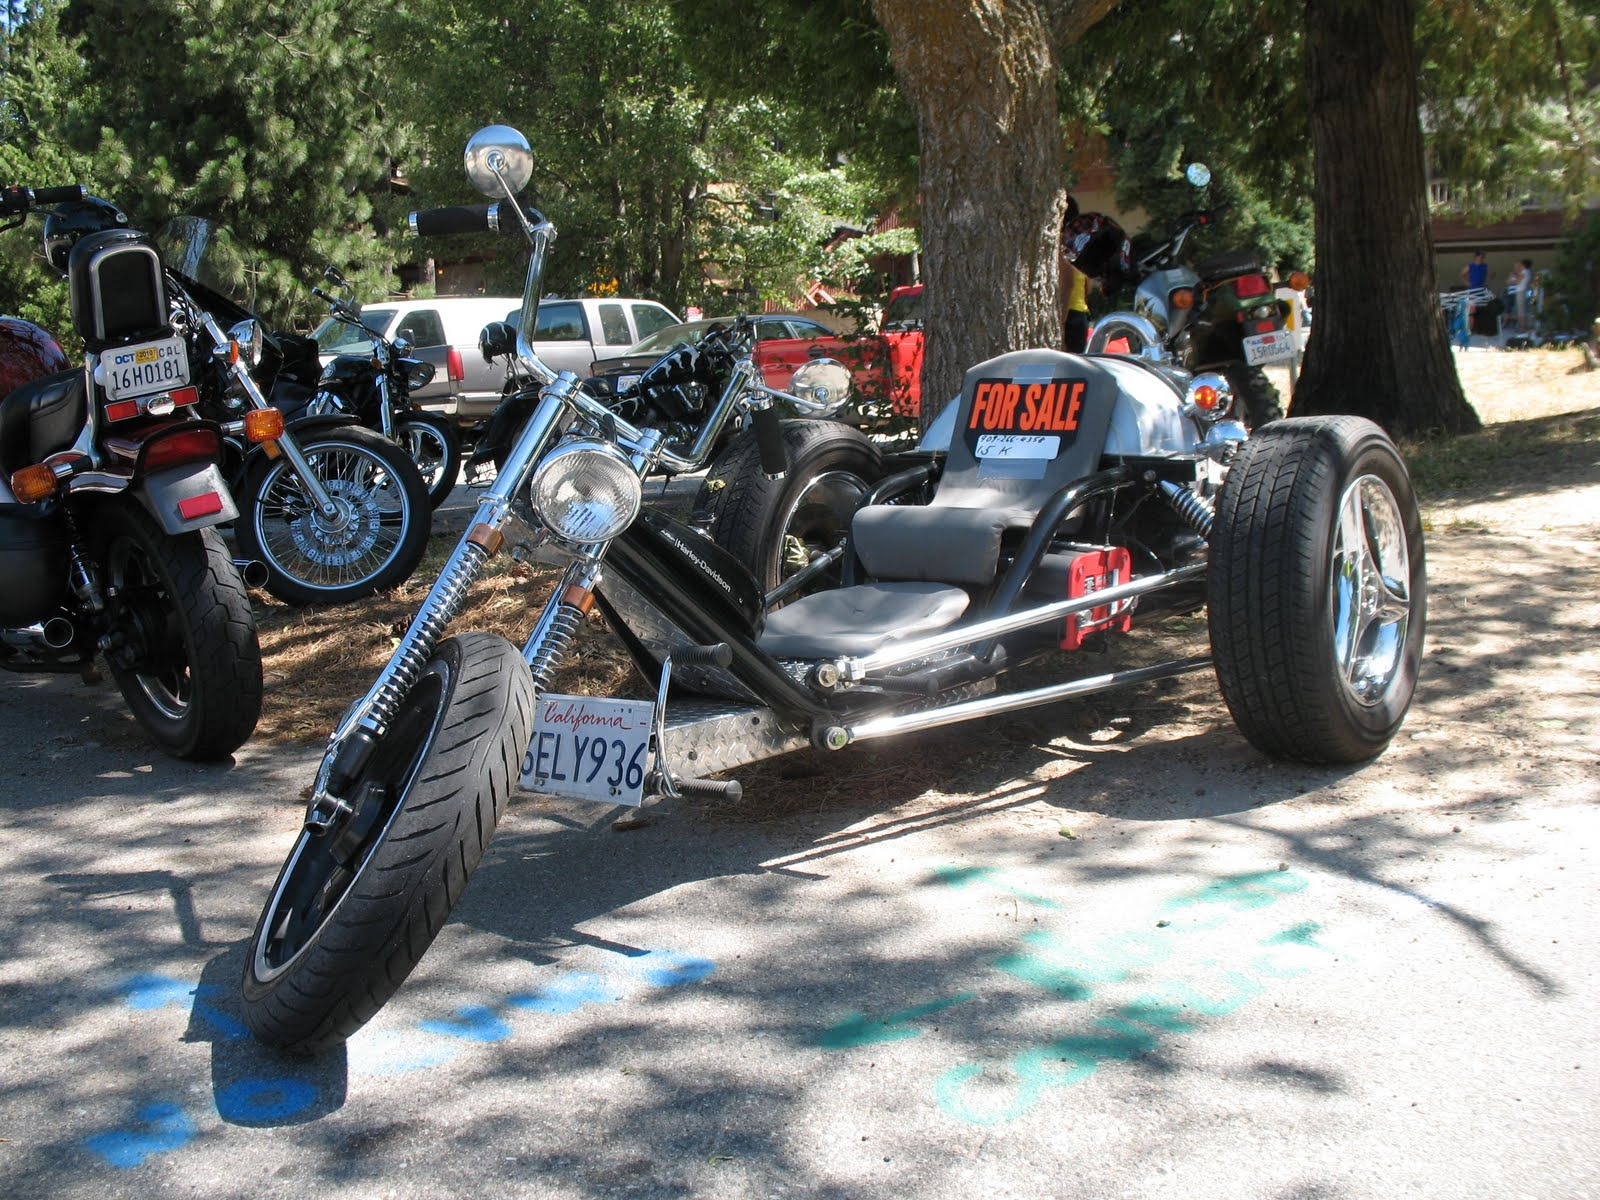 Home Built Vw Trikes submited images.